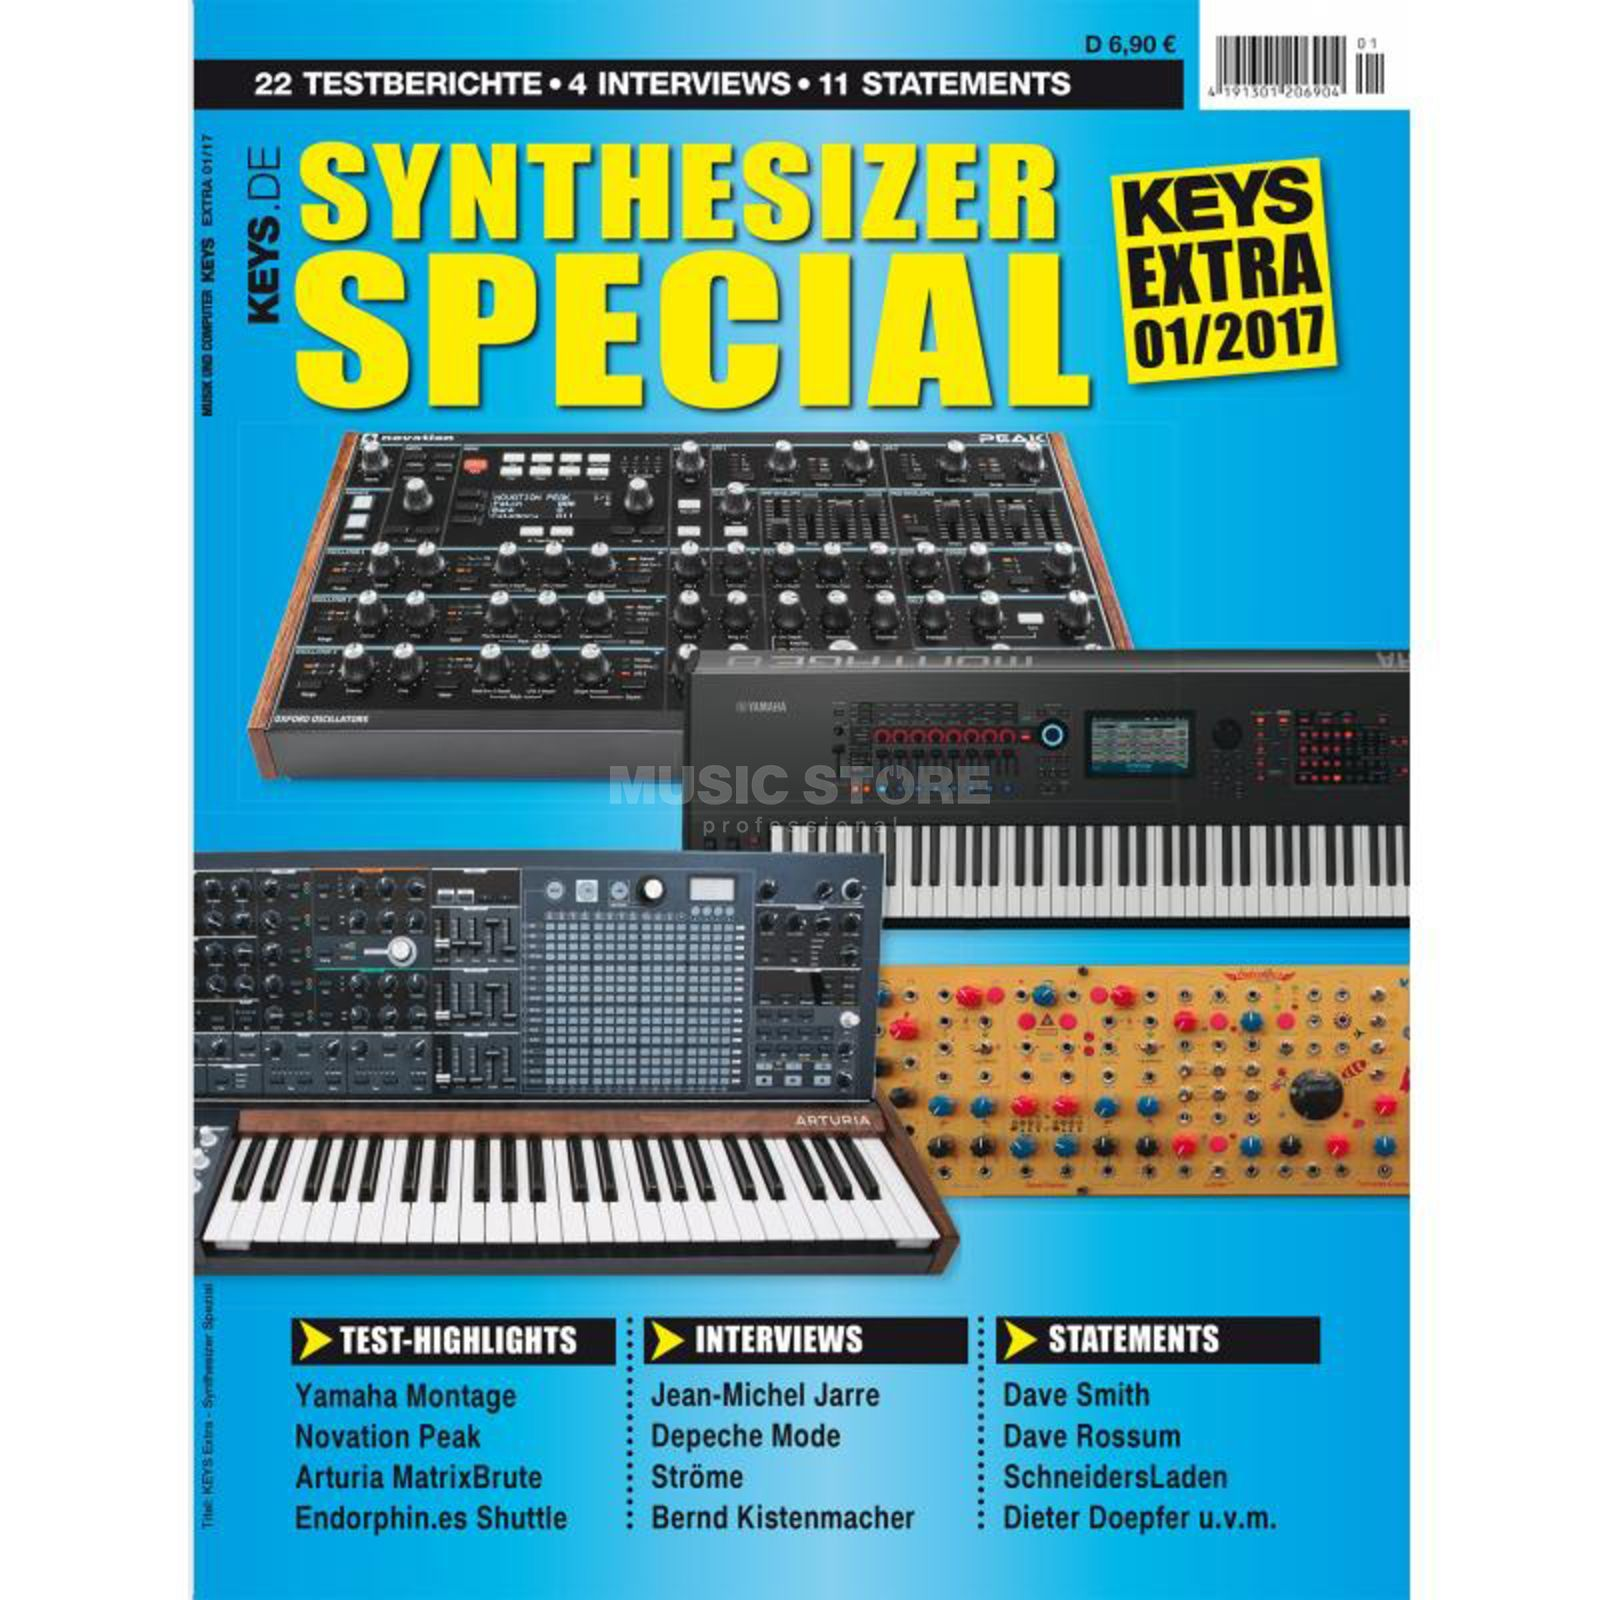 PPV Medien Synthesizer Special Keys Extra 01/2017 Product Image